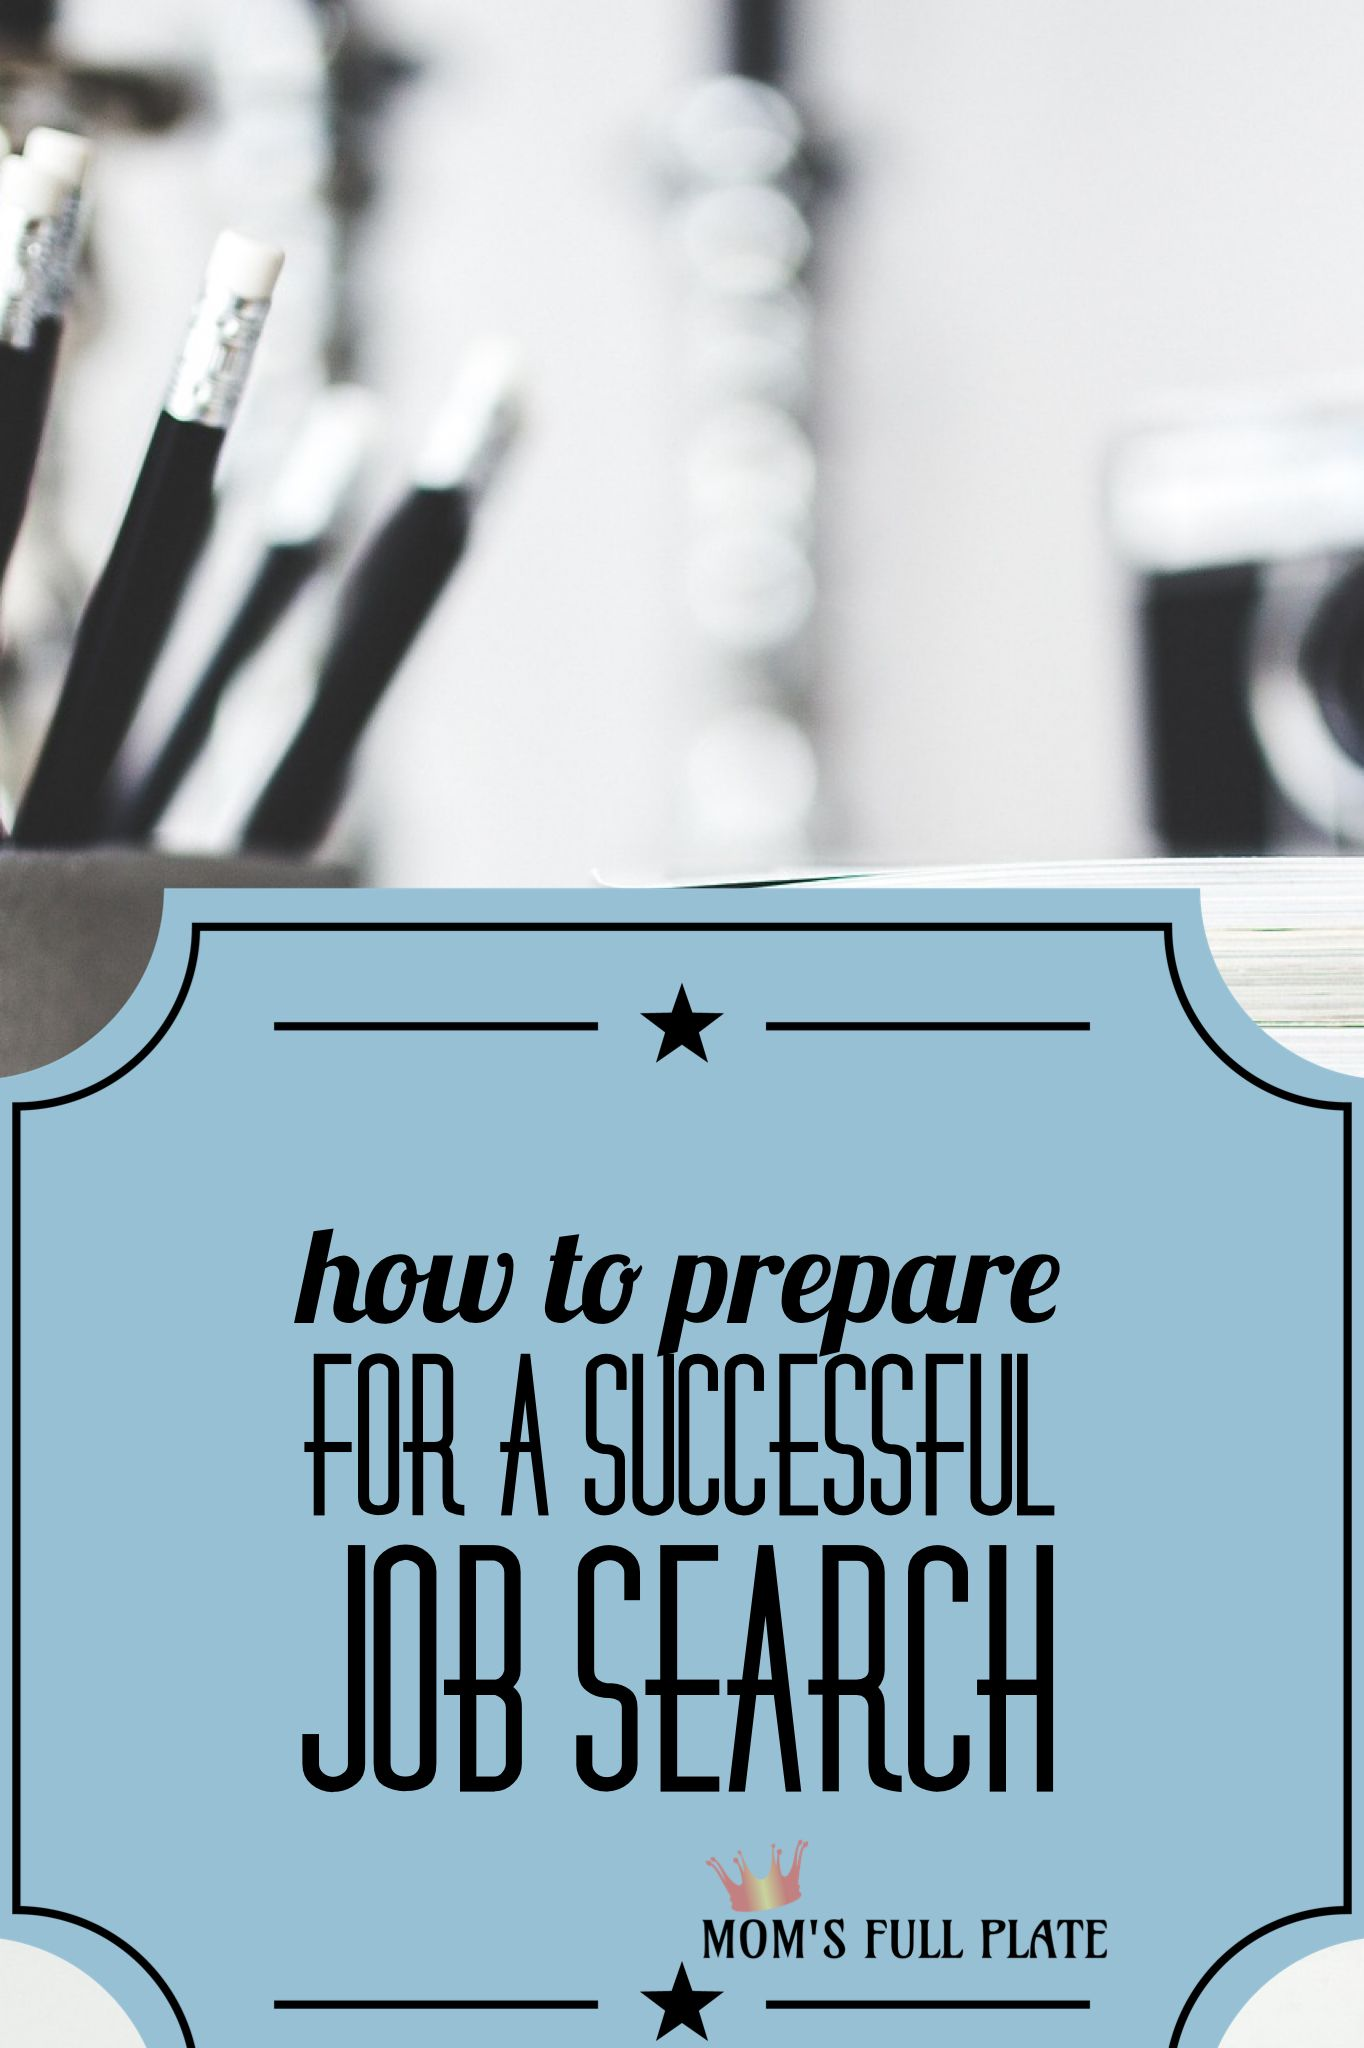 How to Prepare for a Successful Job Search Job search